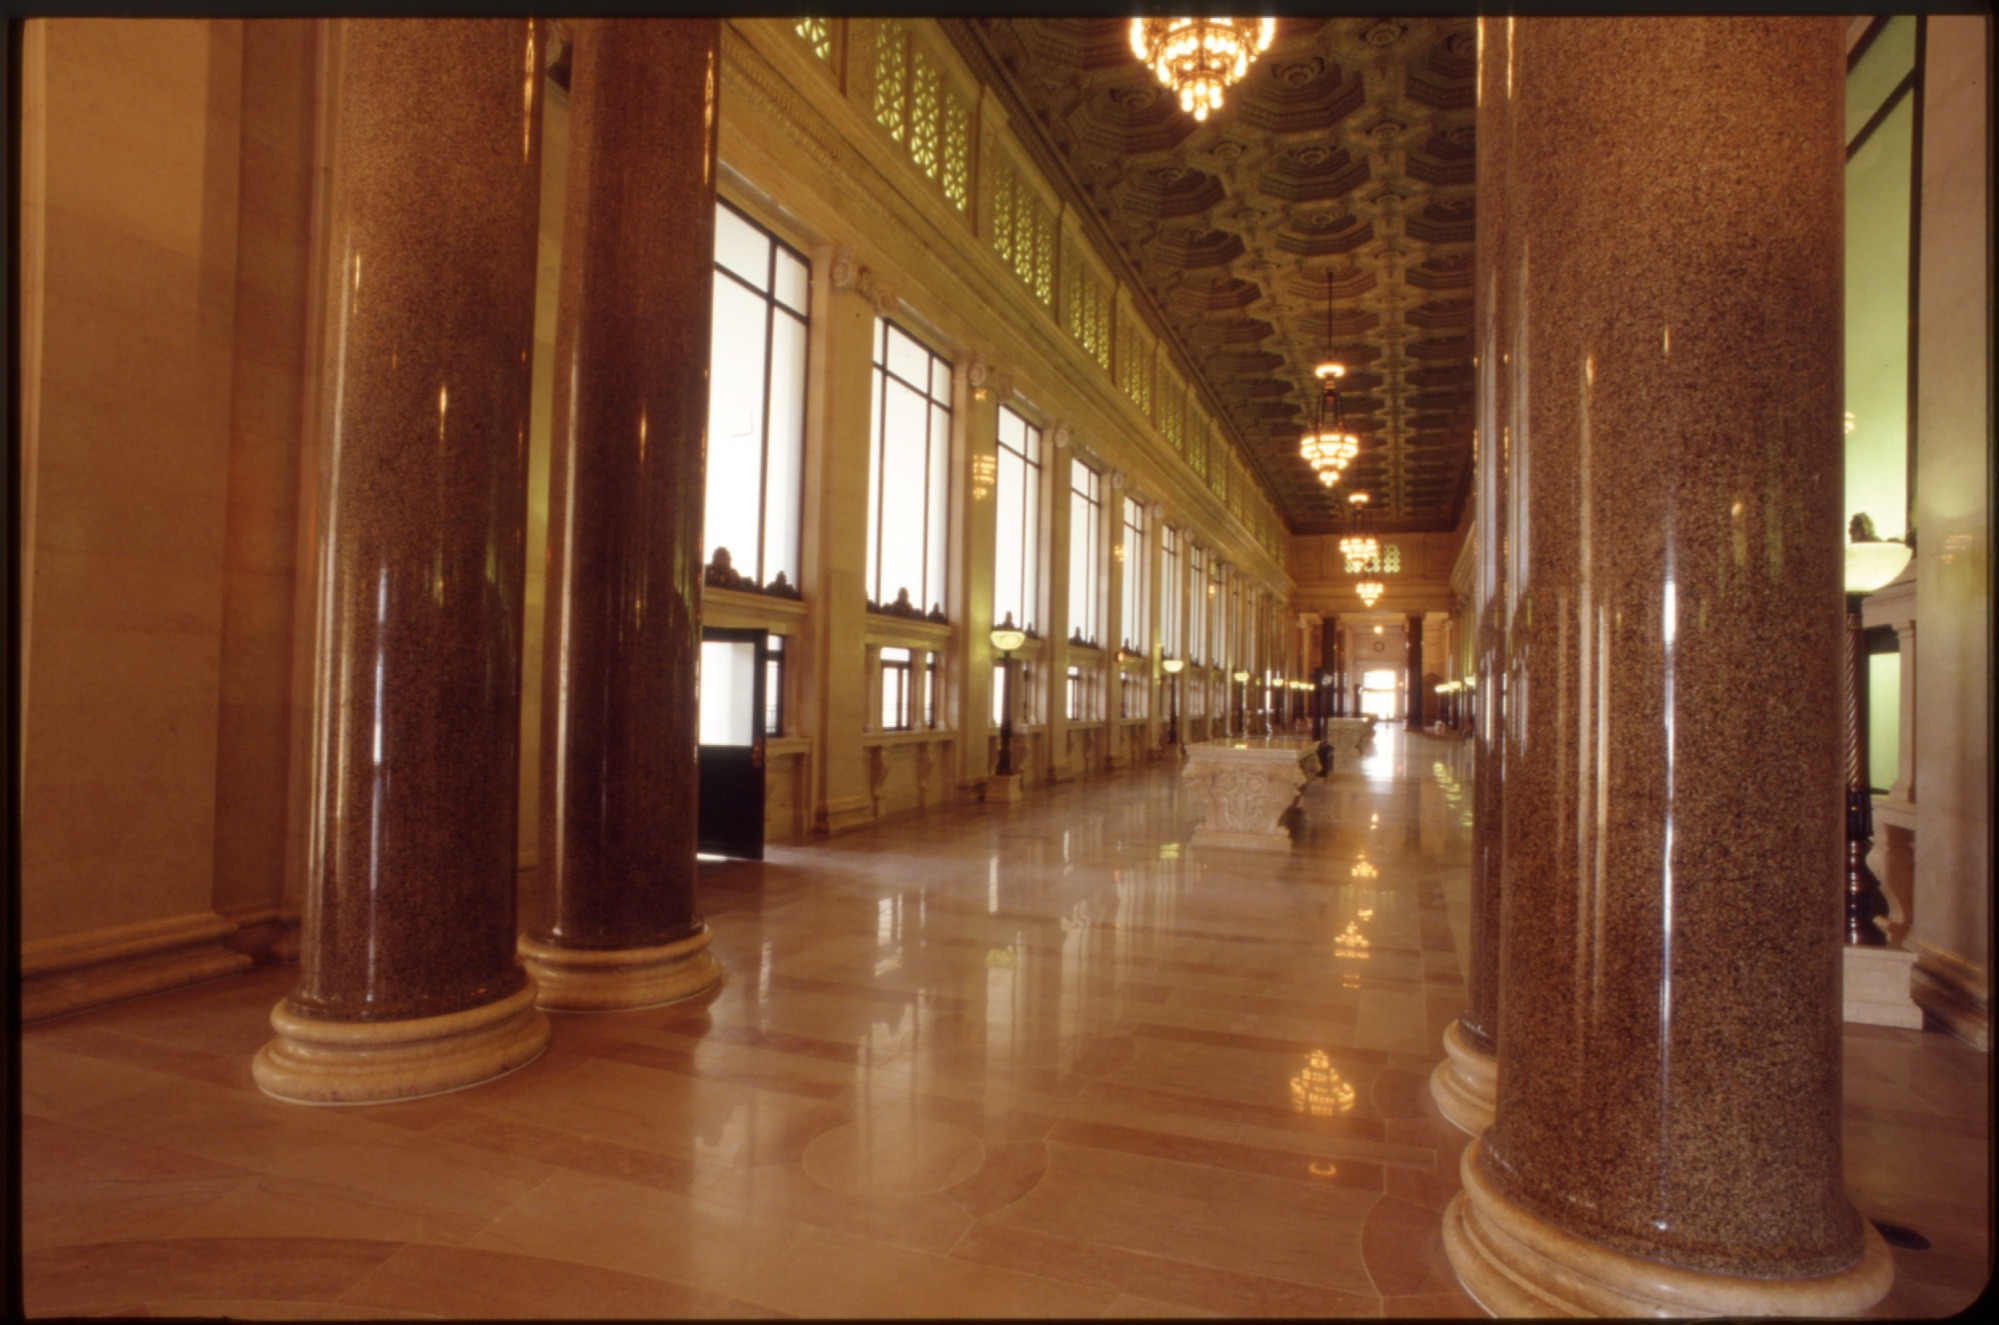 Lobby of the Washington City Post Office Building